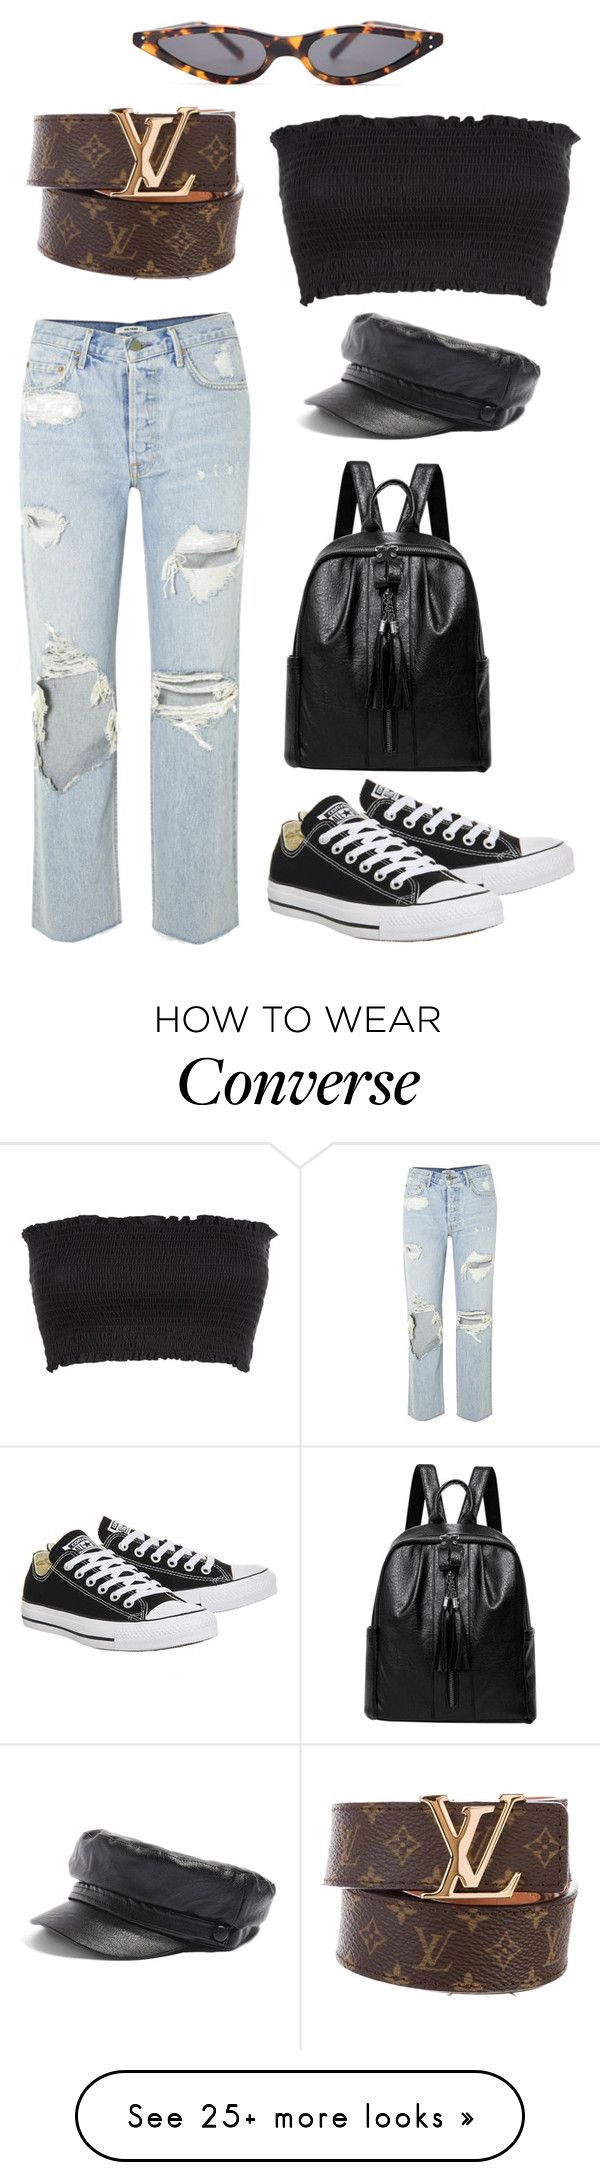 """lv"" by eboony800 on Polyvore featuring GRLFRND, Louis Vuitton and Topshop"